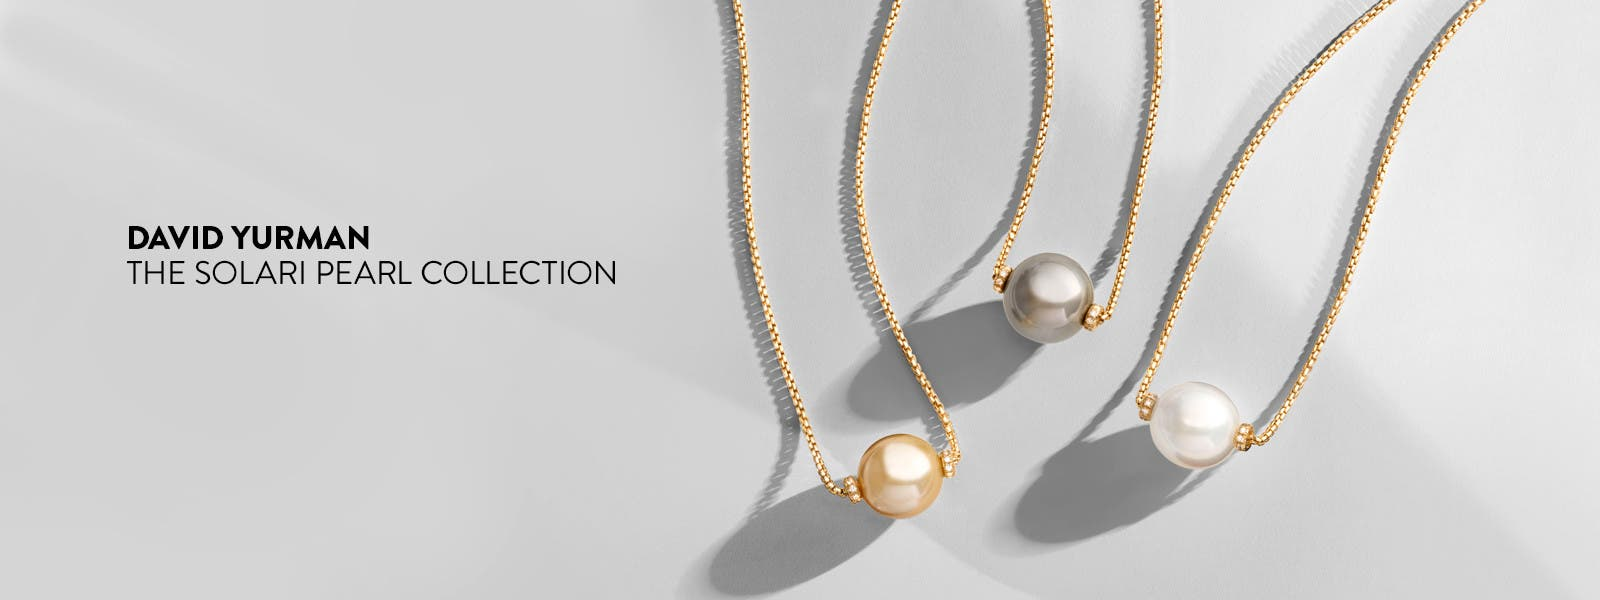 David Yurman - The Solari Pearl Collection.